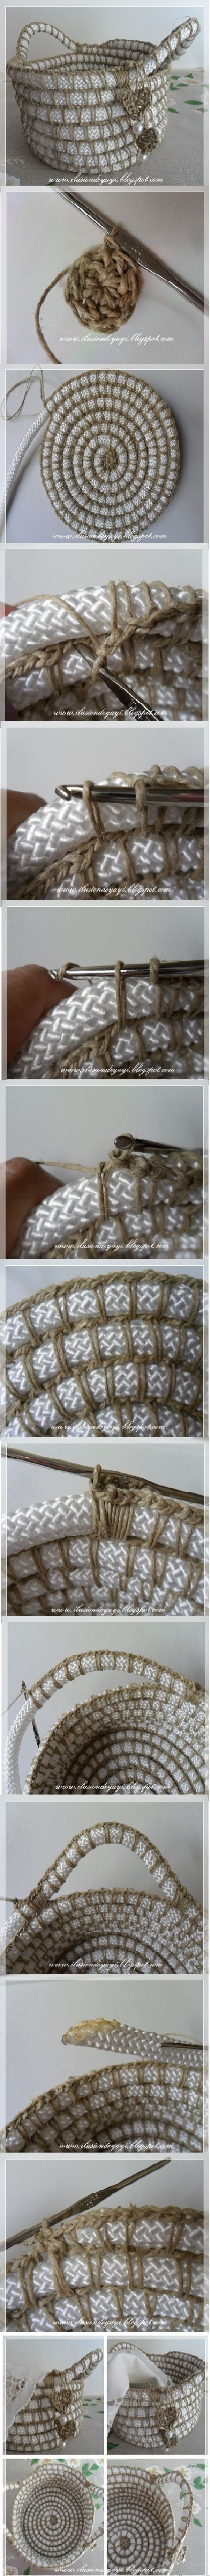 Crochet and Rope Basket - Tutorial ❥ 4U // hf by Cloudwatcher